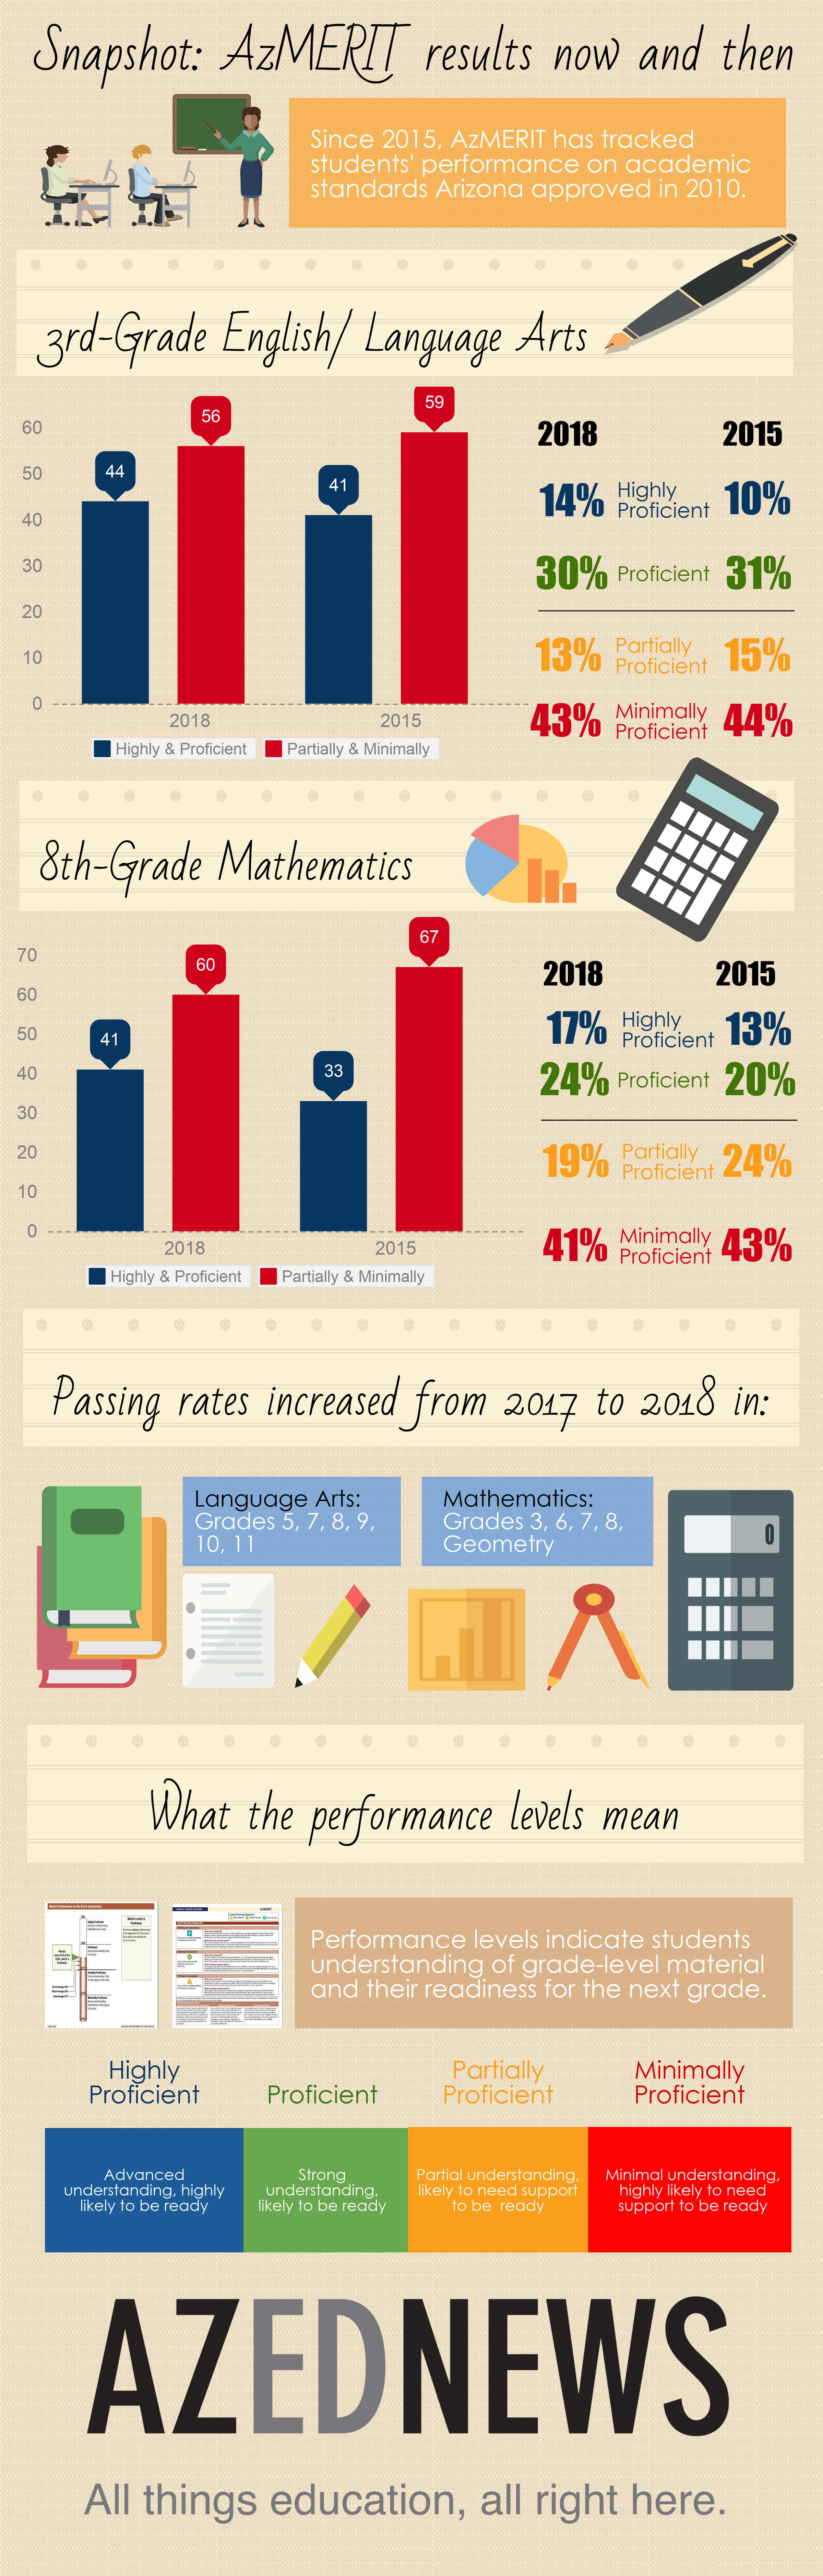 Students' AzMERIT results show steady growth for past four years AZEdNewsAzMeritThePastFourYearsInfographic